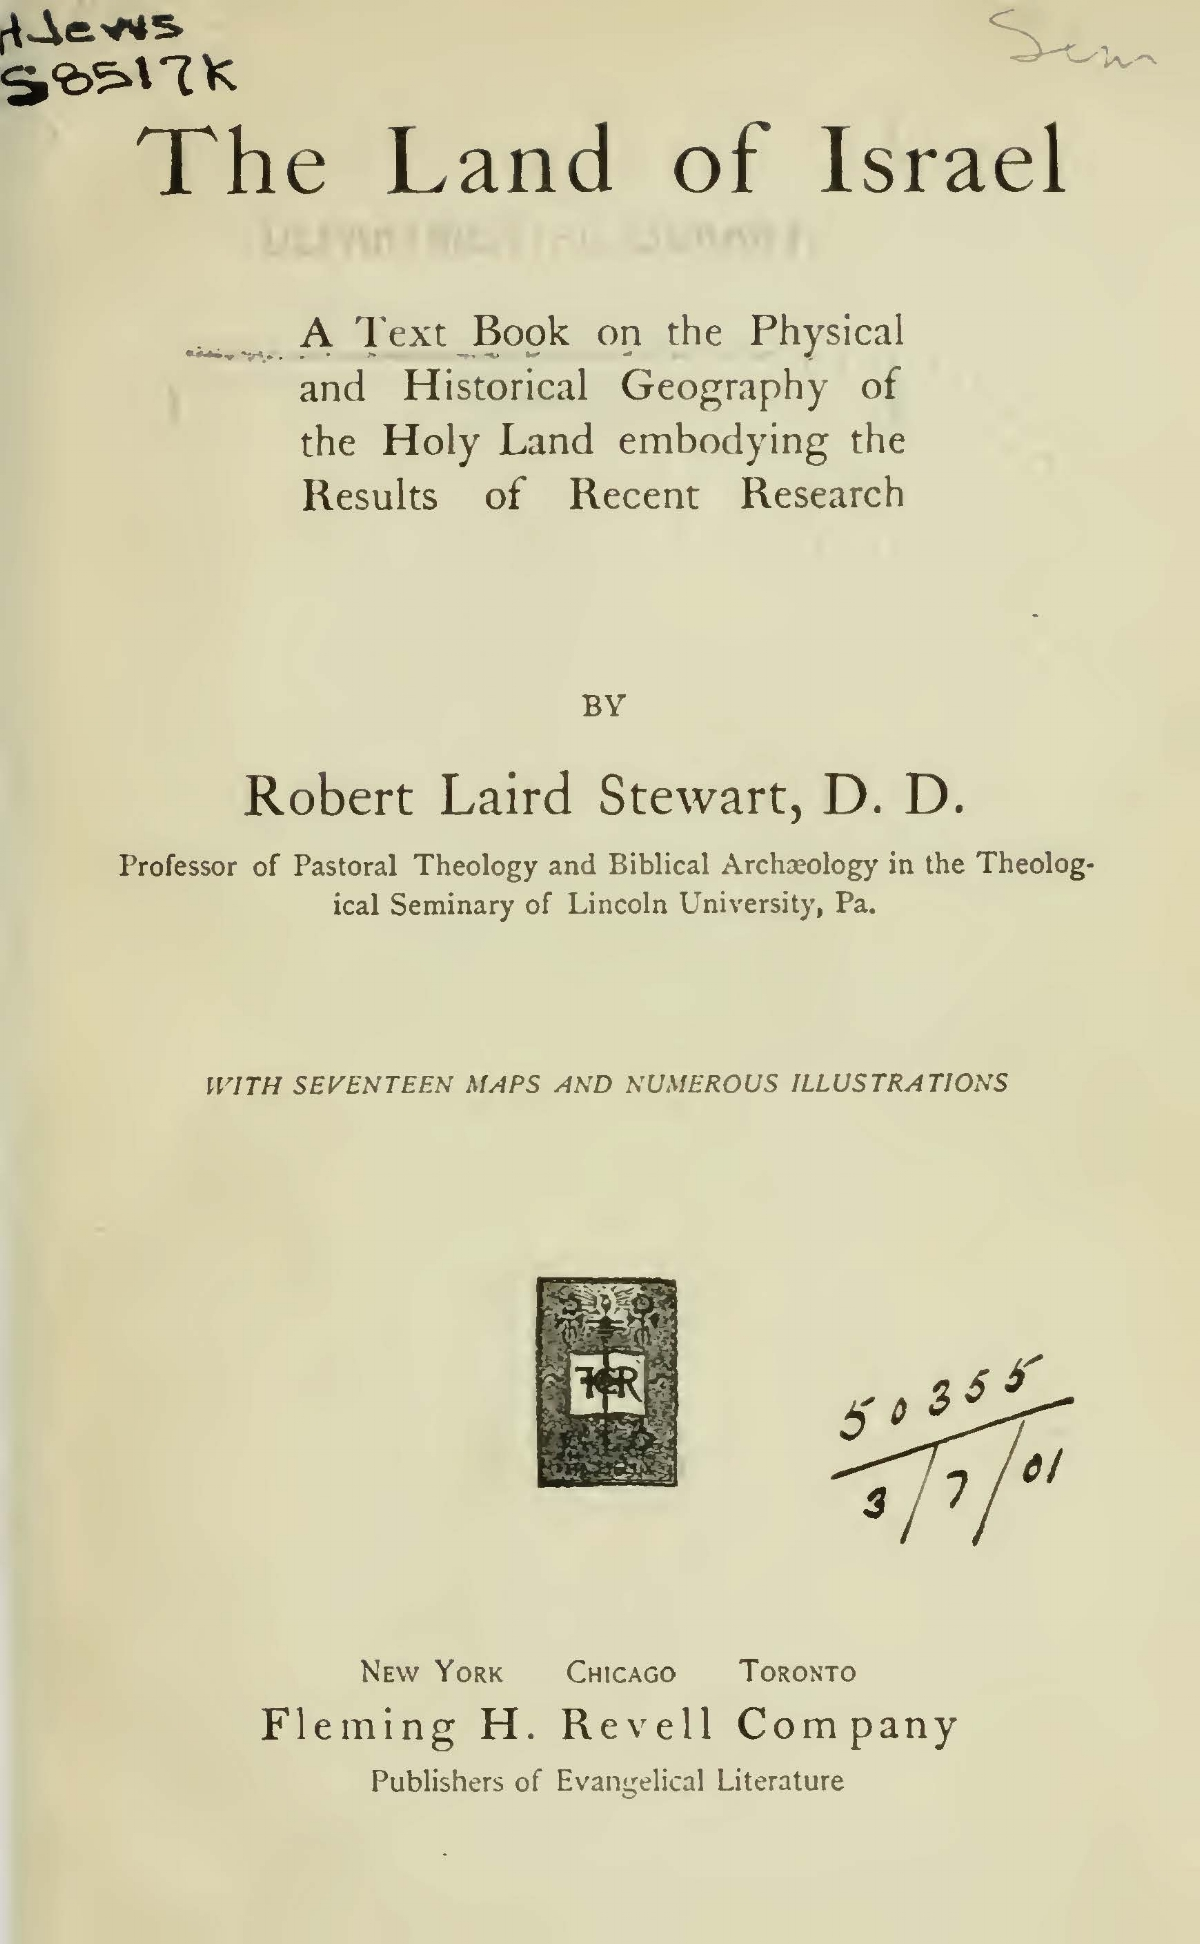 Stewart, Robert Laird, The Land of Israel Title Page.jpg